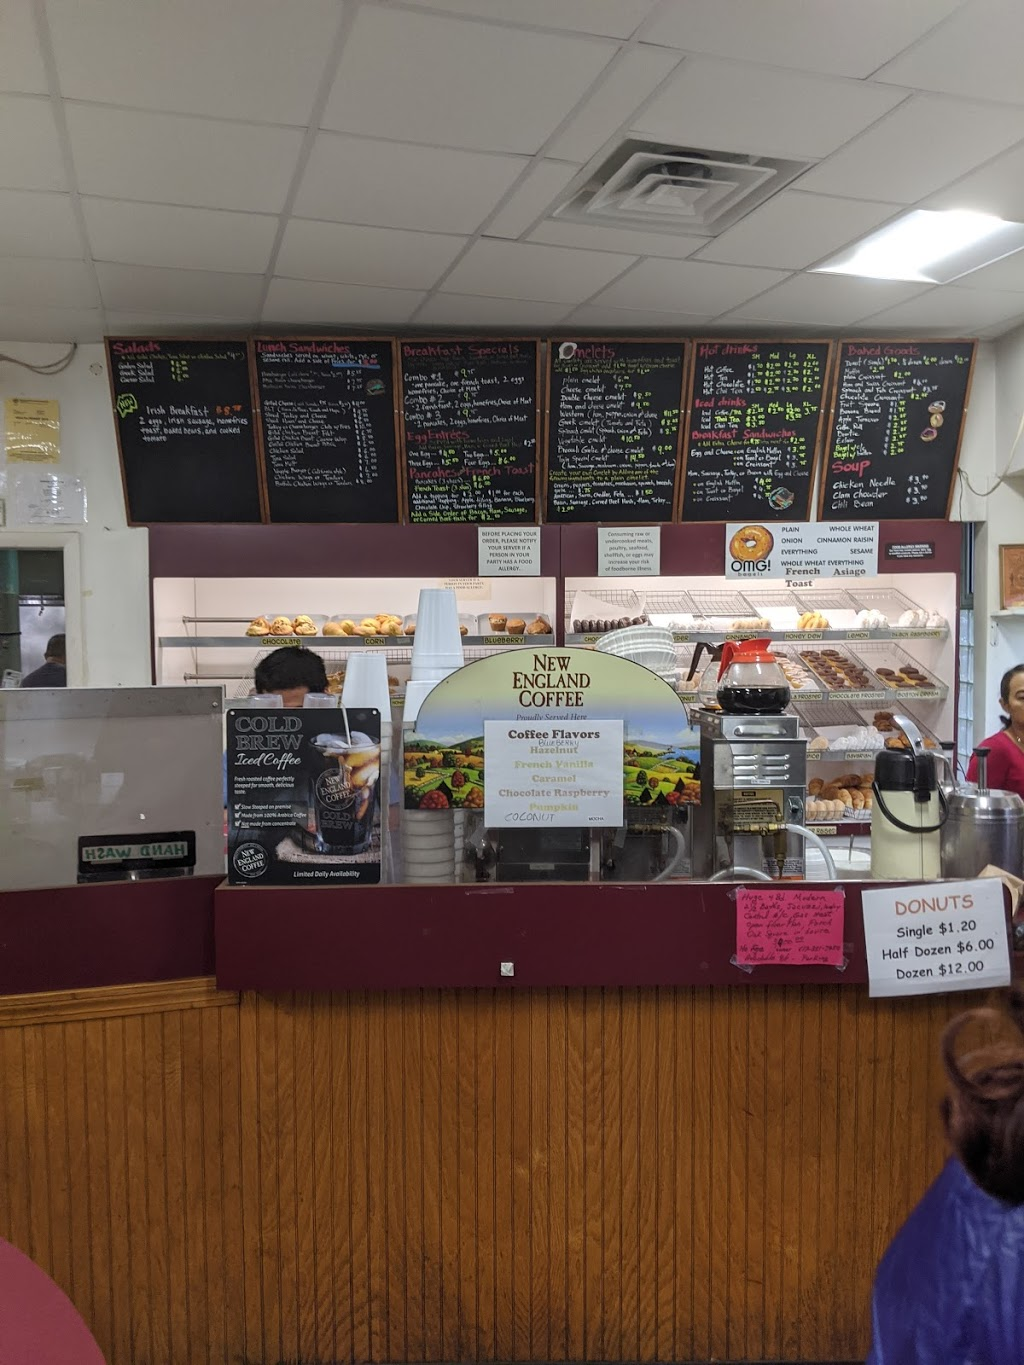 Twin Donuts | bakery | 501 Cambridge St, Allston, MA 02134, USA | 6172549421 OR +1 617-254-9421